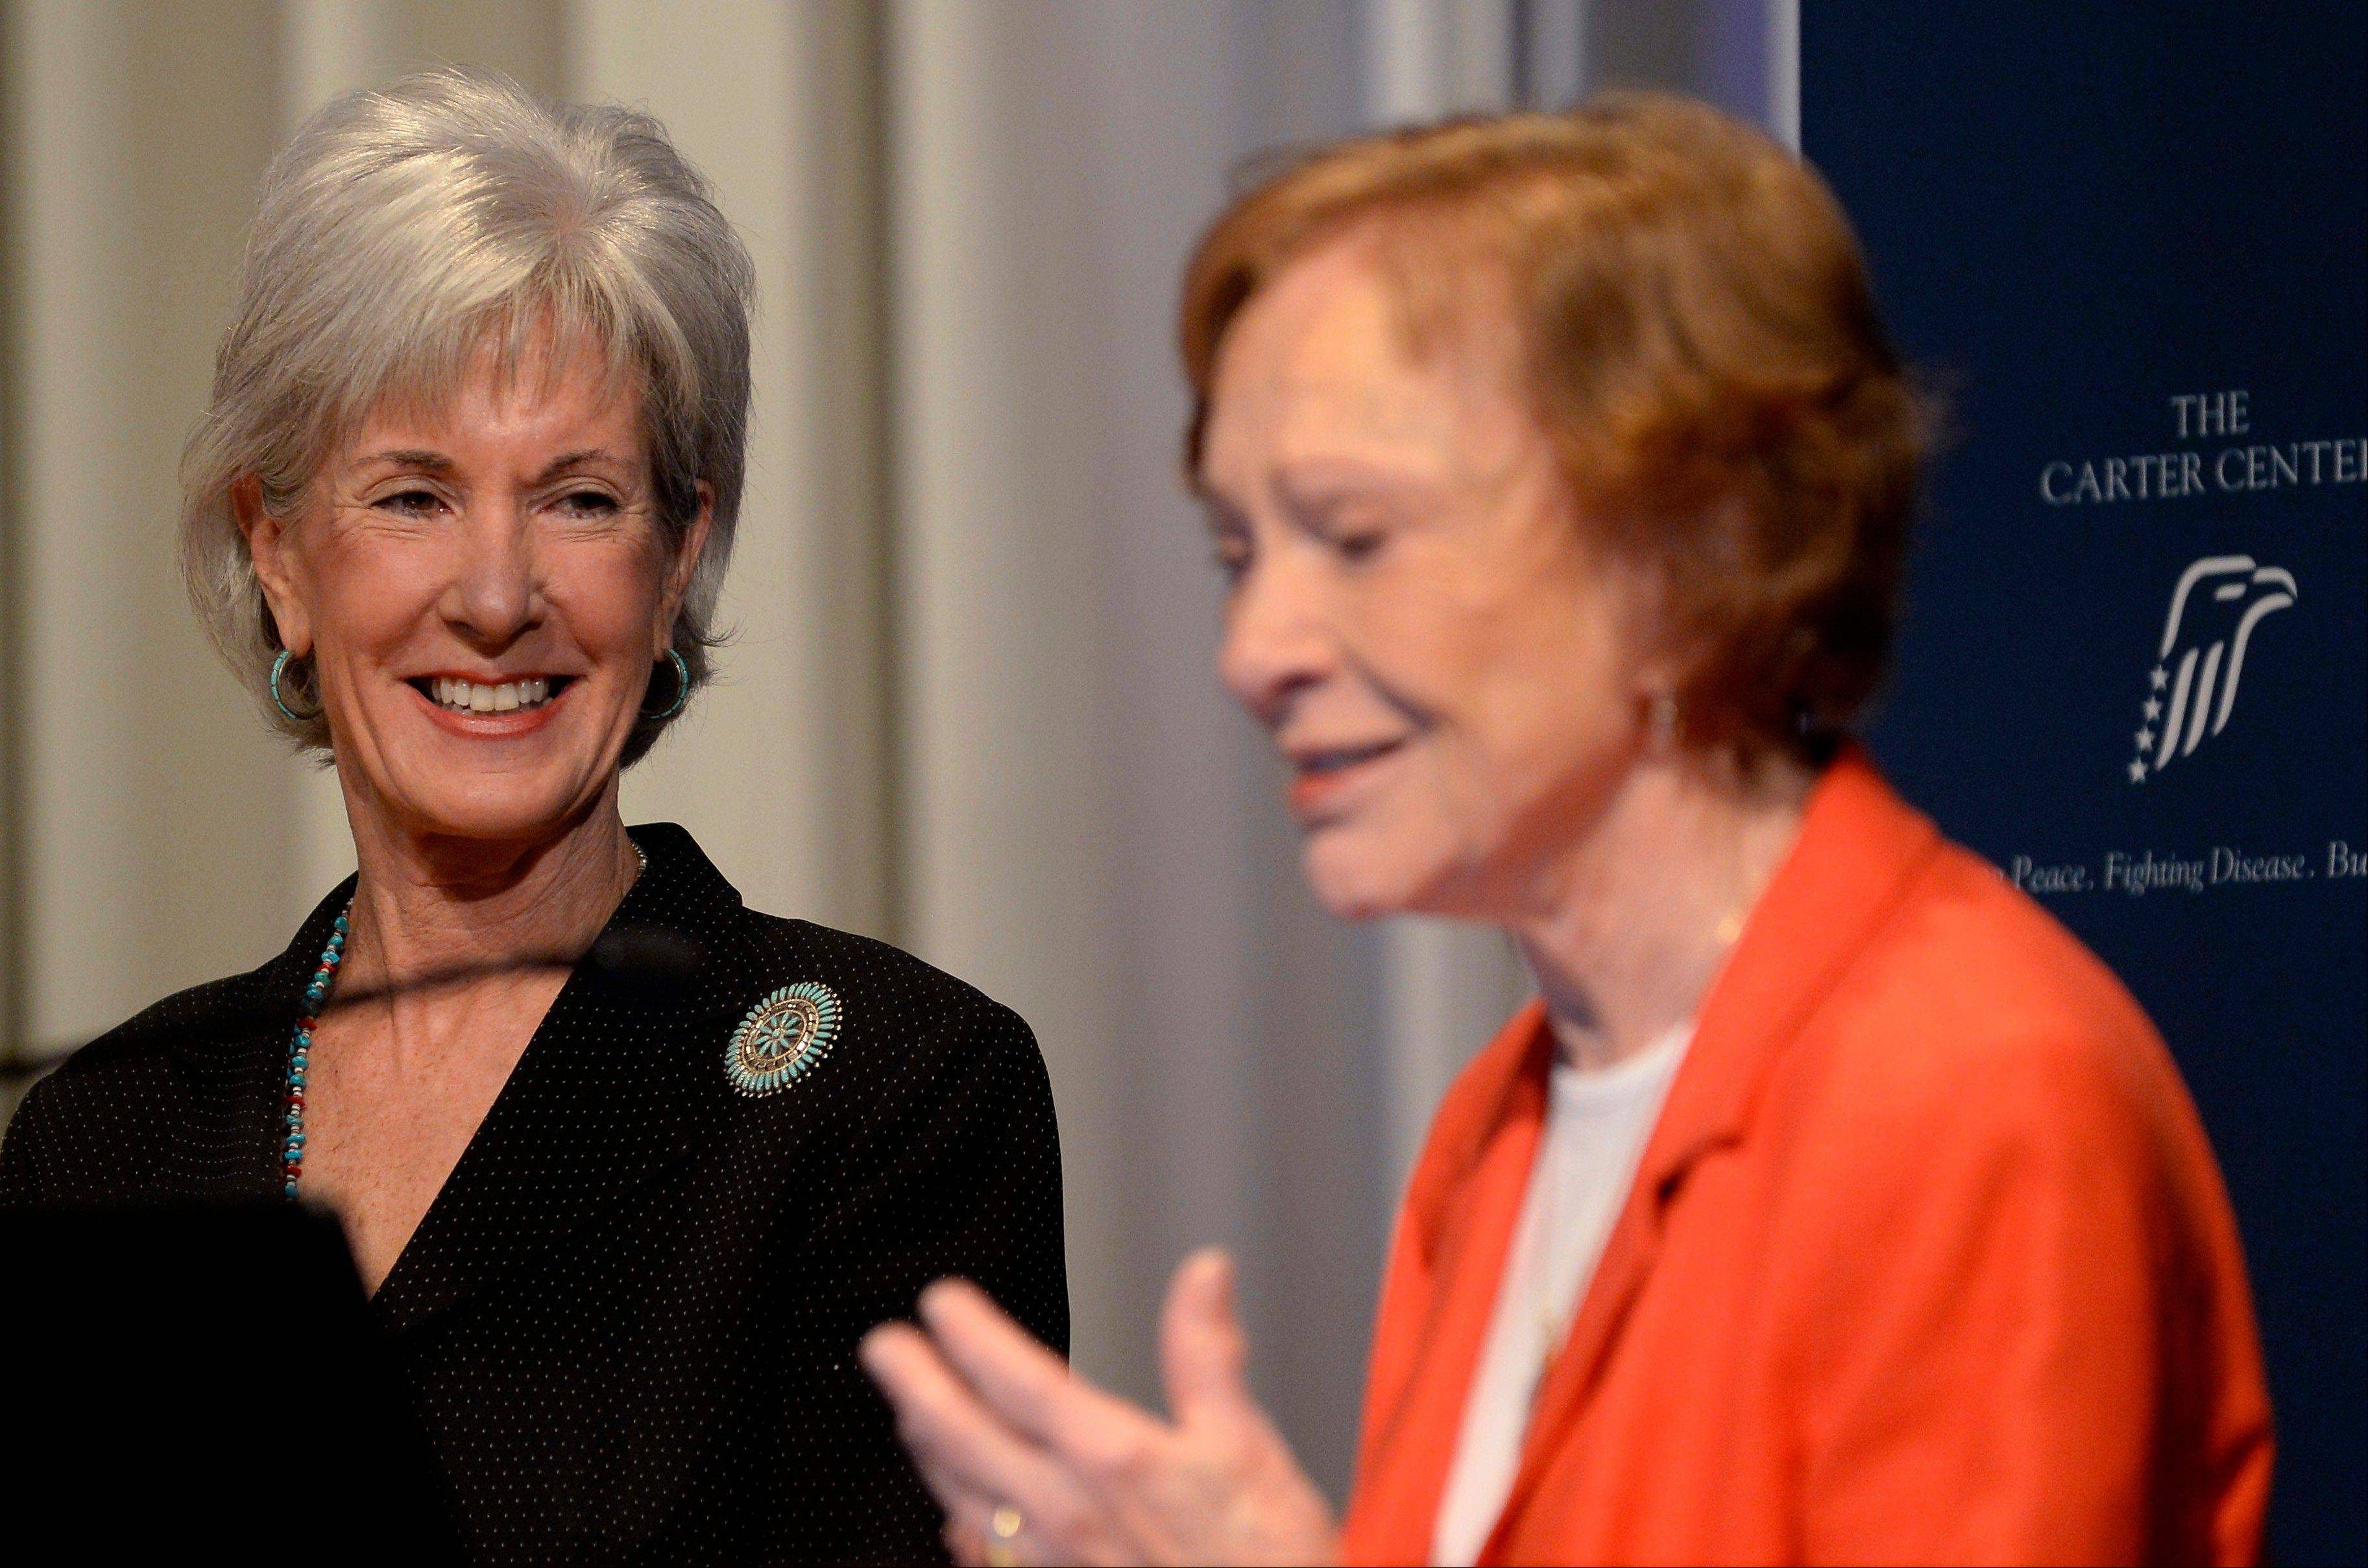 Department of Health and Human Services Secretary Kathleen Sebelius smiles Friday as she is thanked by Former First Lady Rosalynn Carter after announcing easier access to mental health care during Carter�s 29th annual mental health policy symposium at the Carter Center in Atlanta.